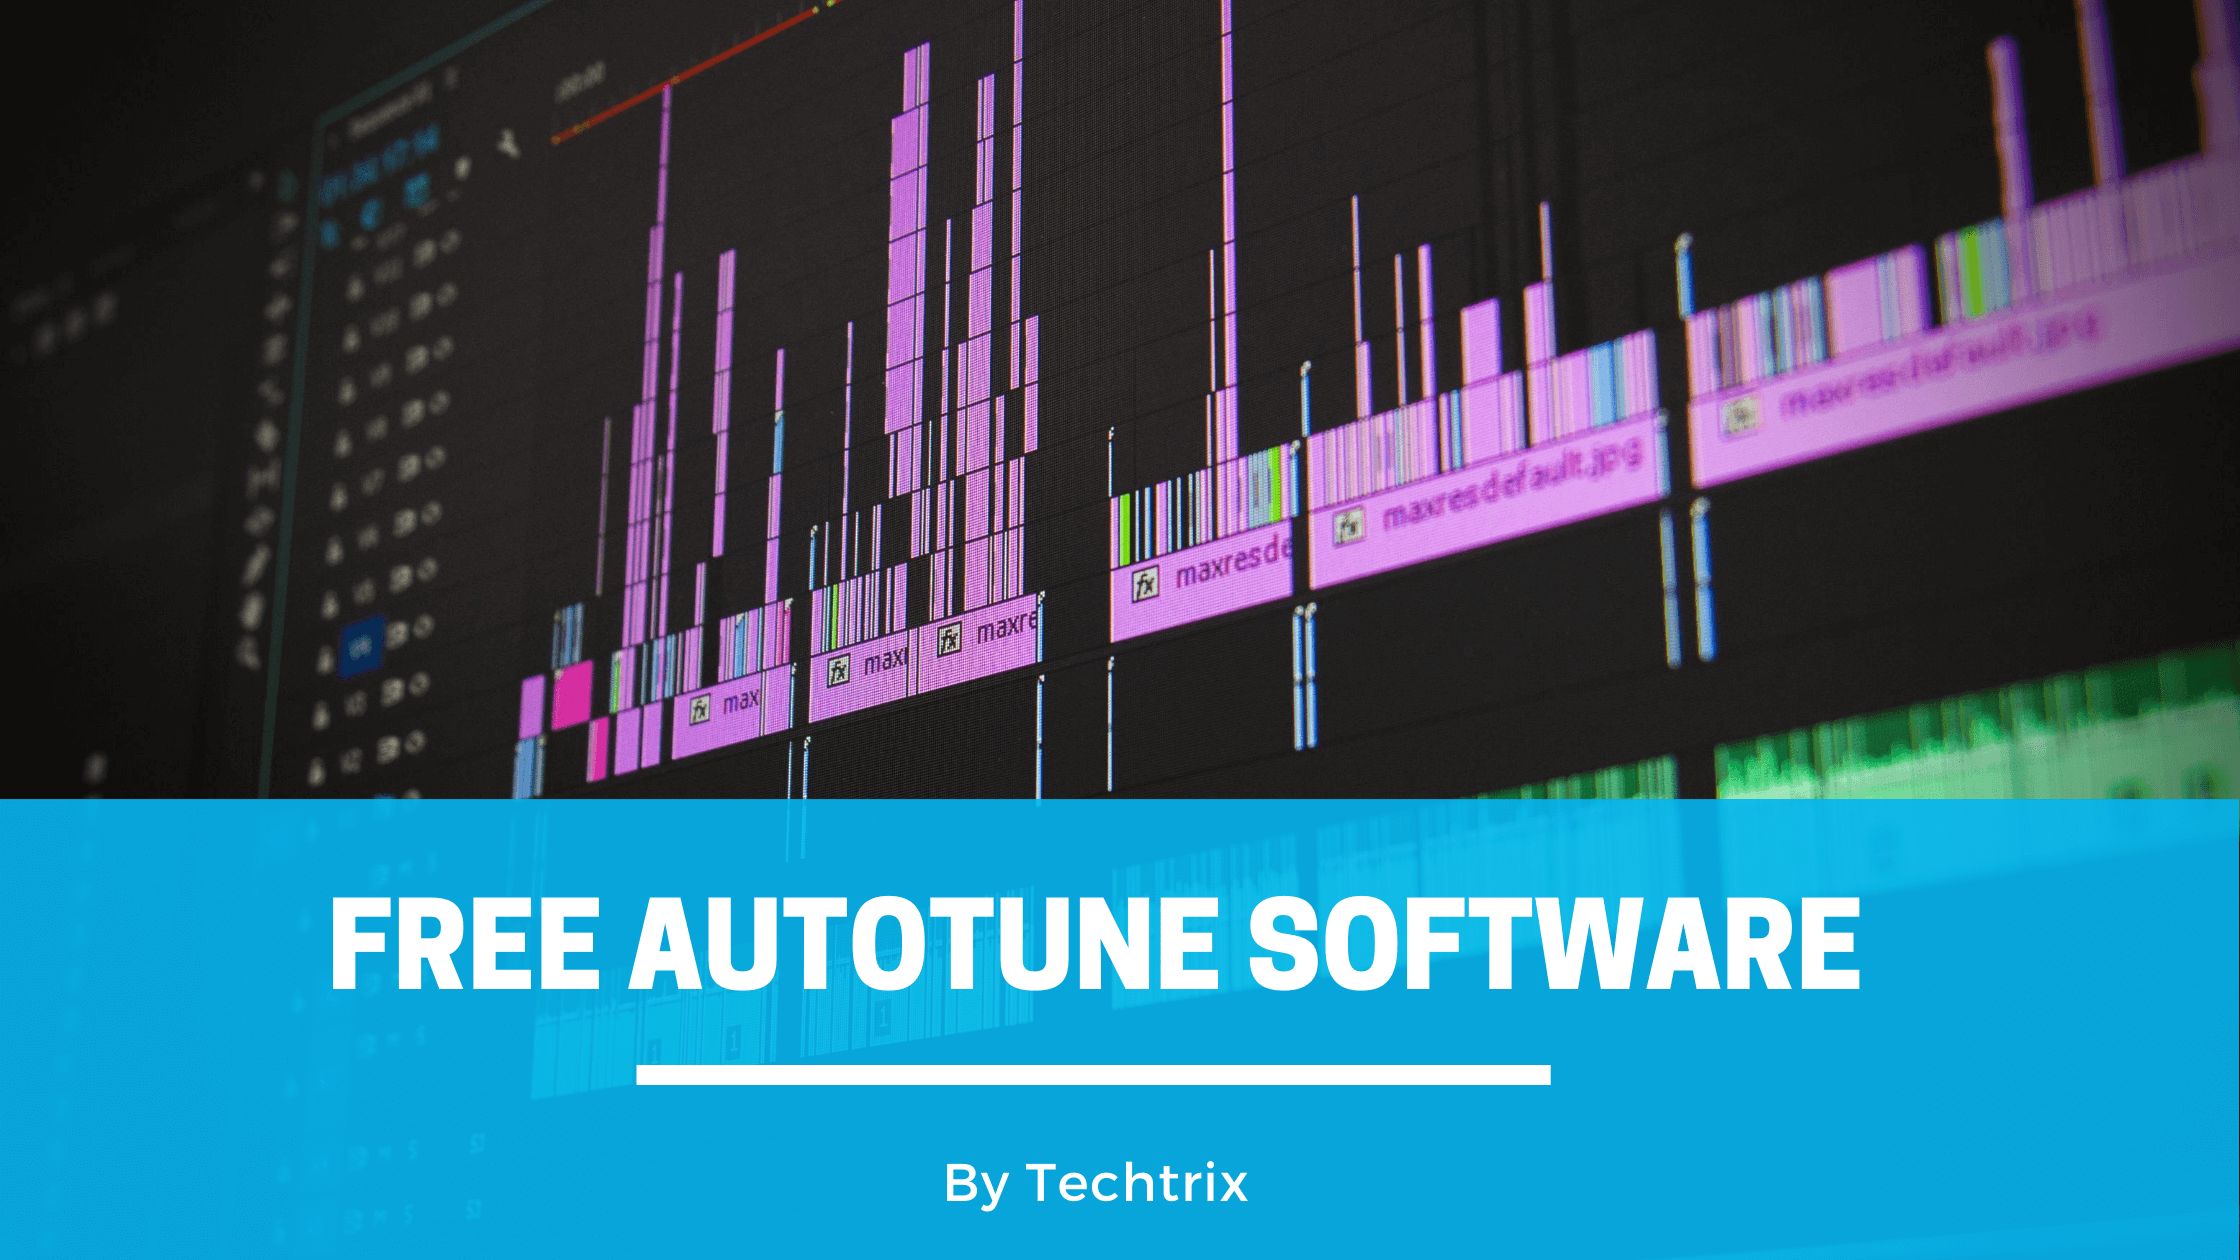 Free Autotune Software